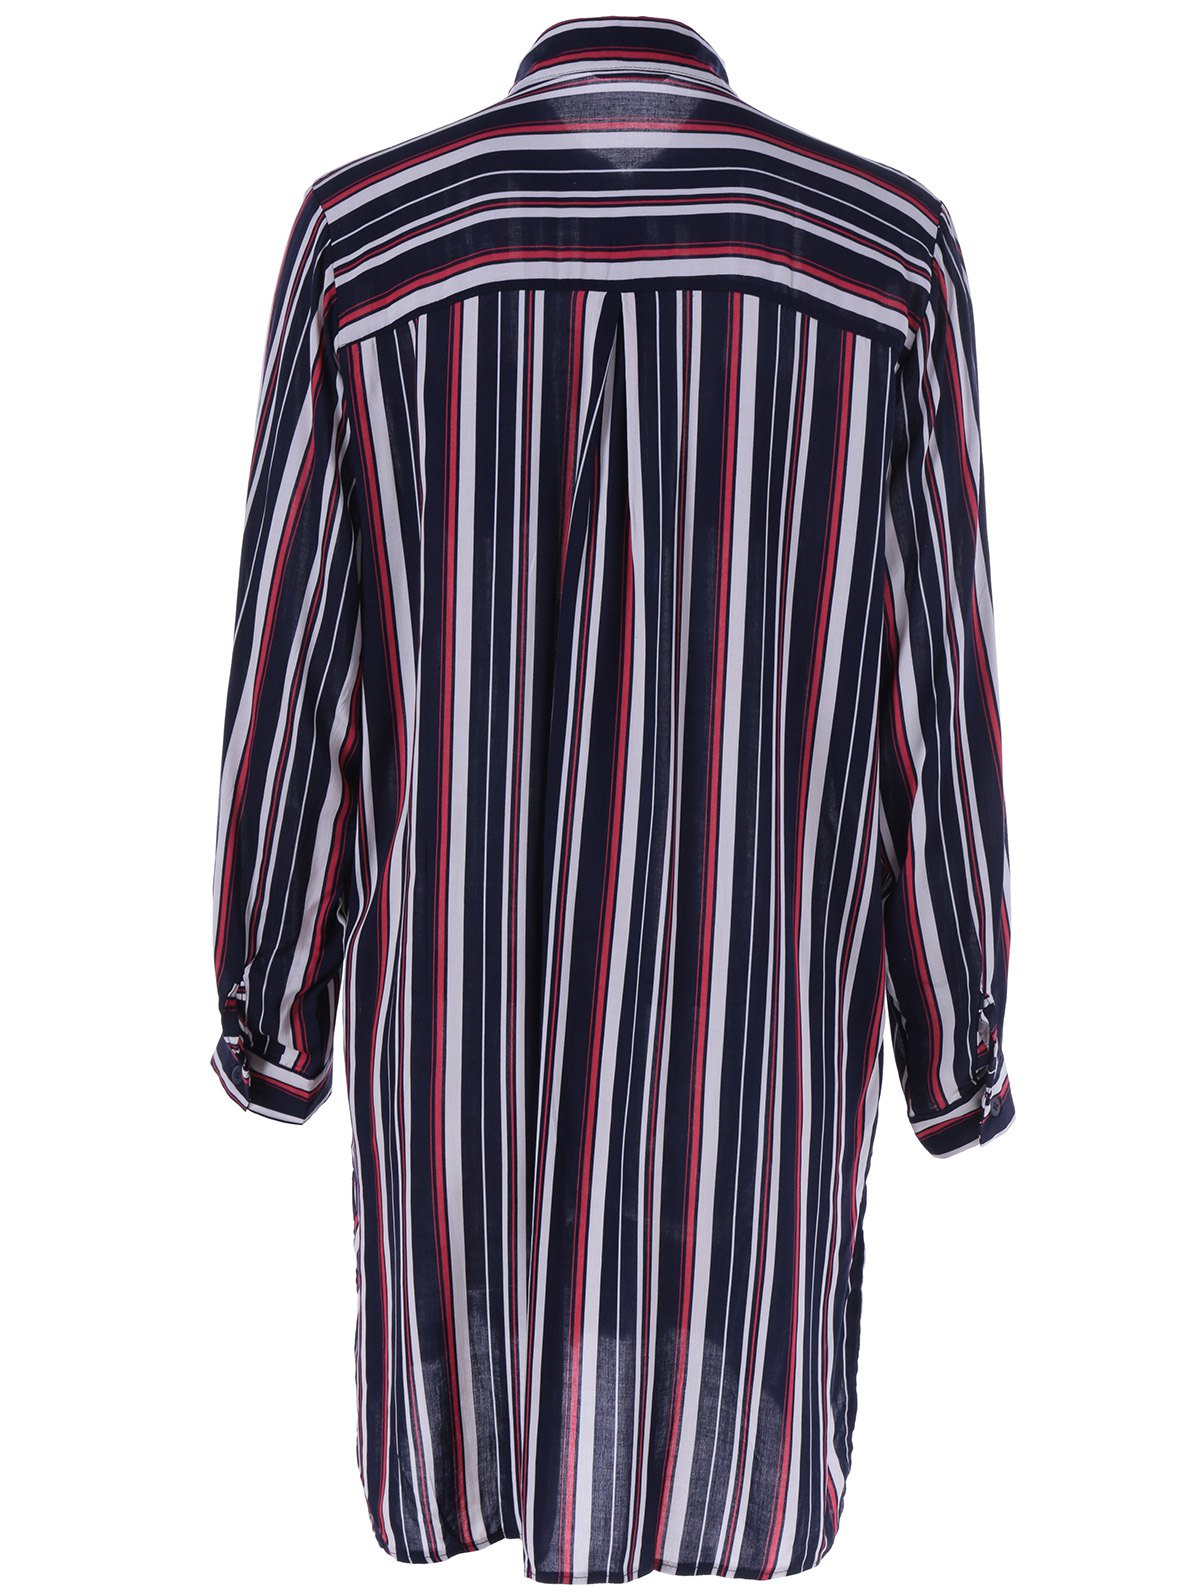 Loose-Fitting Long Sleeves Shirt Collar Slit Striped Shirt Dress For Women - BLACK ONE SIZE(FIT SIZE XS TO M)